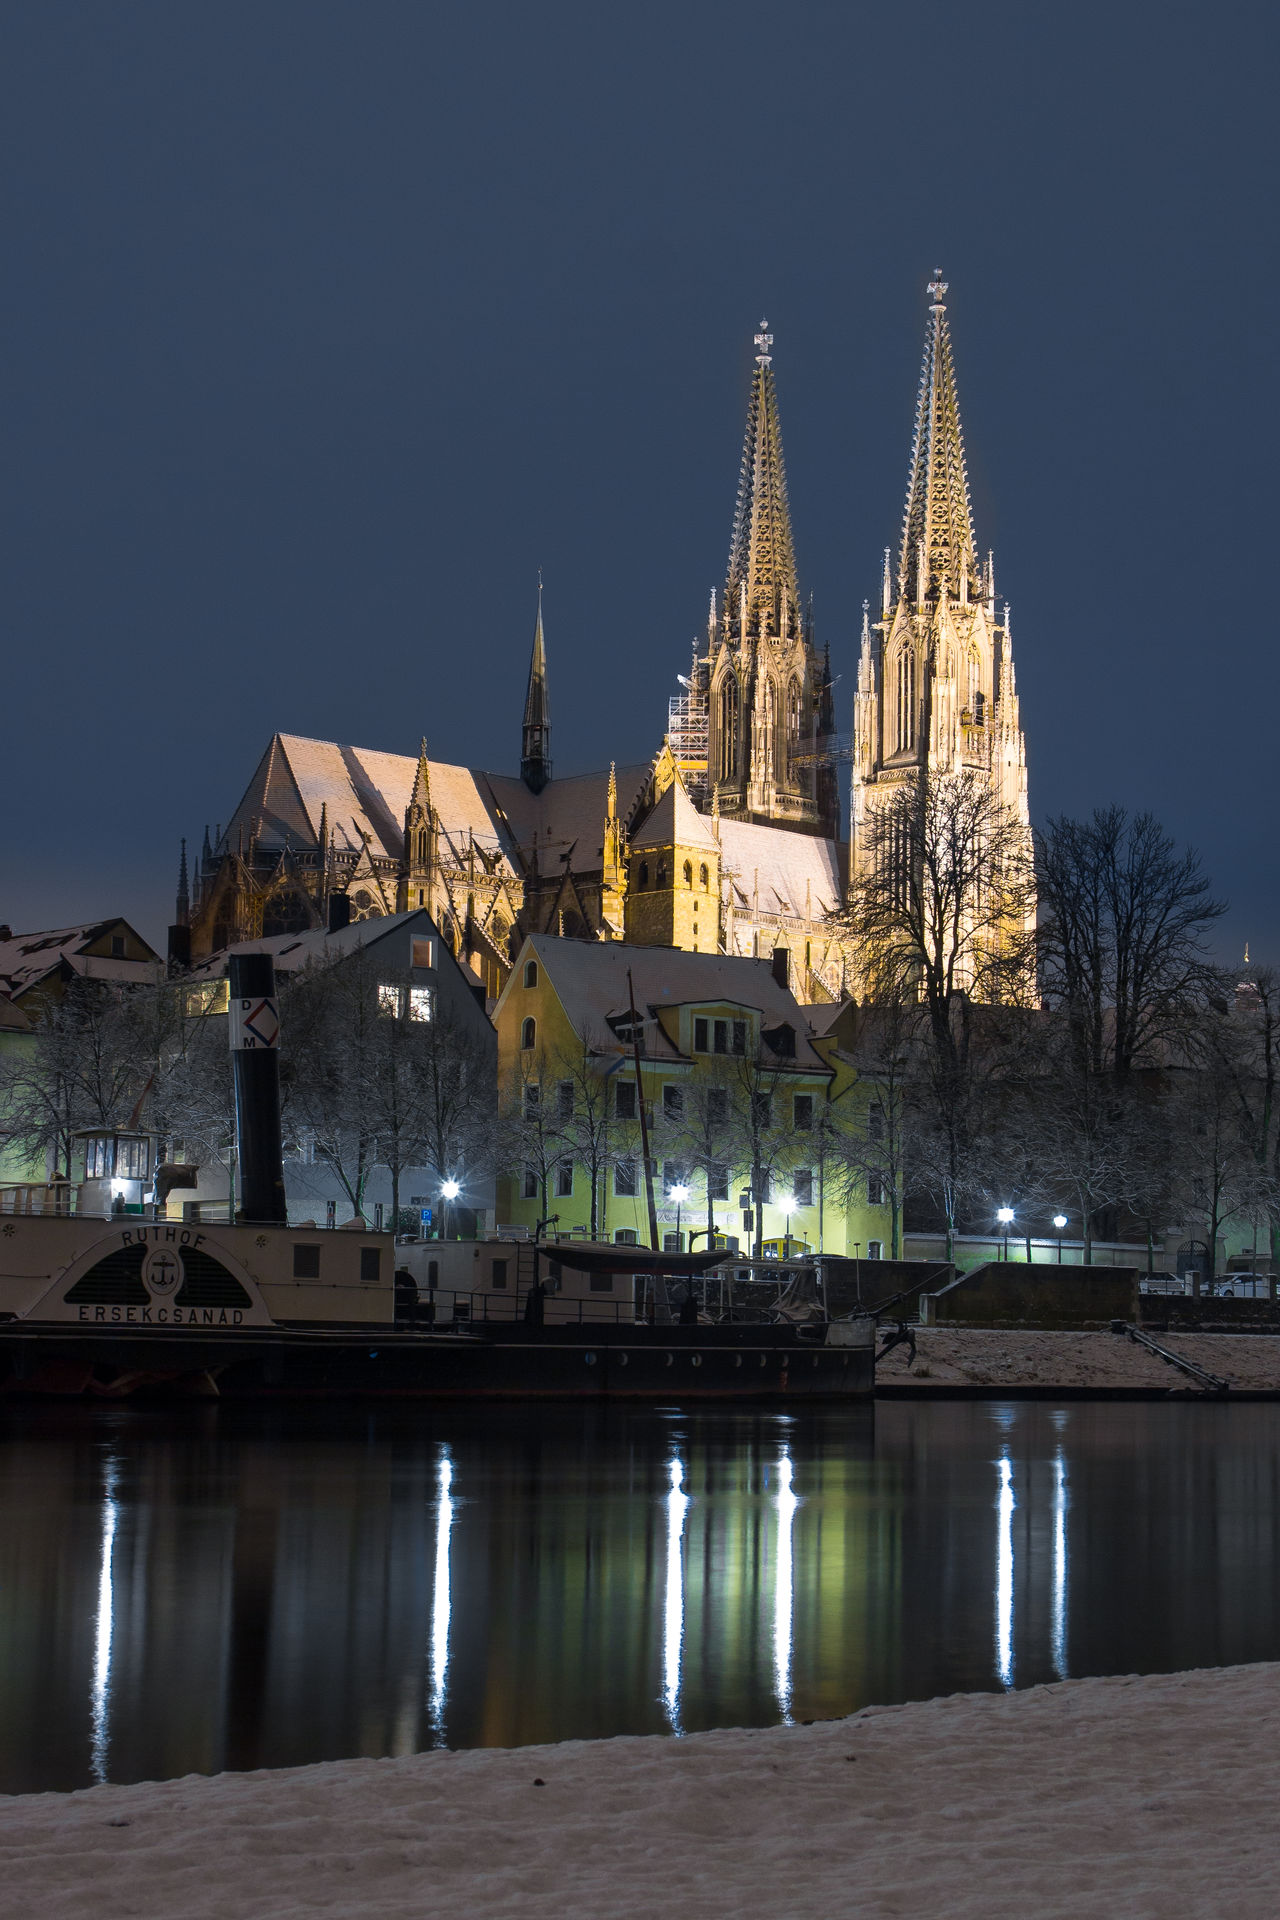 """""""Regensburg at night"""" Architecture Architecture_collection Building Exterior Built Structure City Cityscape Gold Colored History Illuminated Lake Landscape Night Night Lights Nightphotography No People Outdoors Place Of Worship Reflection Sky Tourism Tower Travel Travel Destinations Urban Skyline Water"""